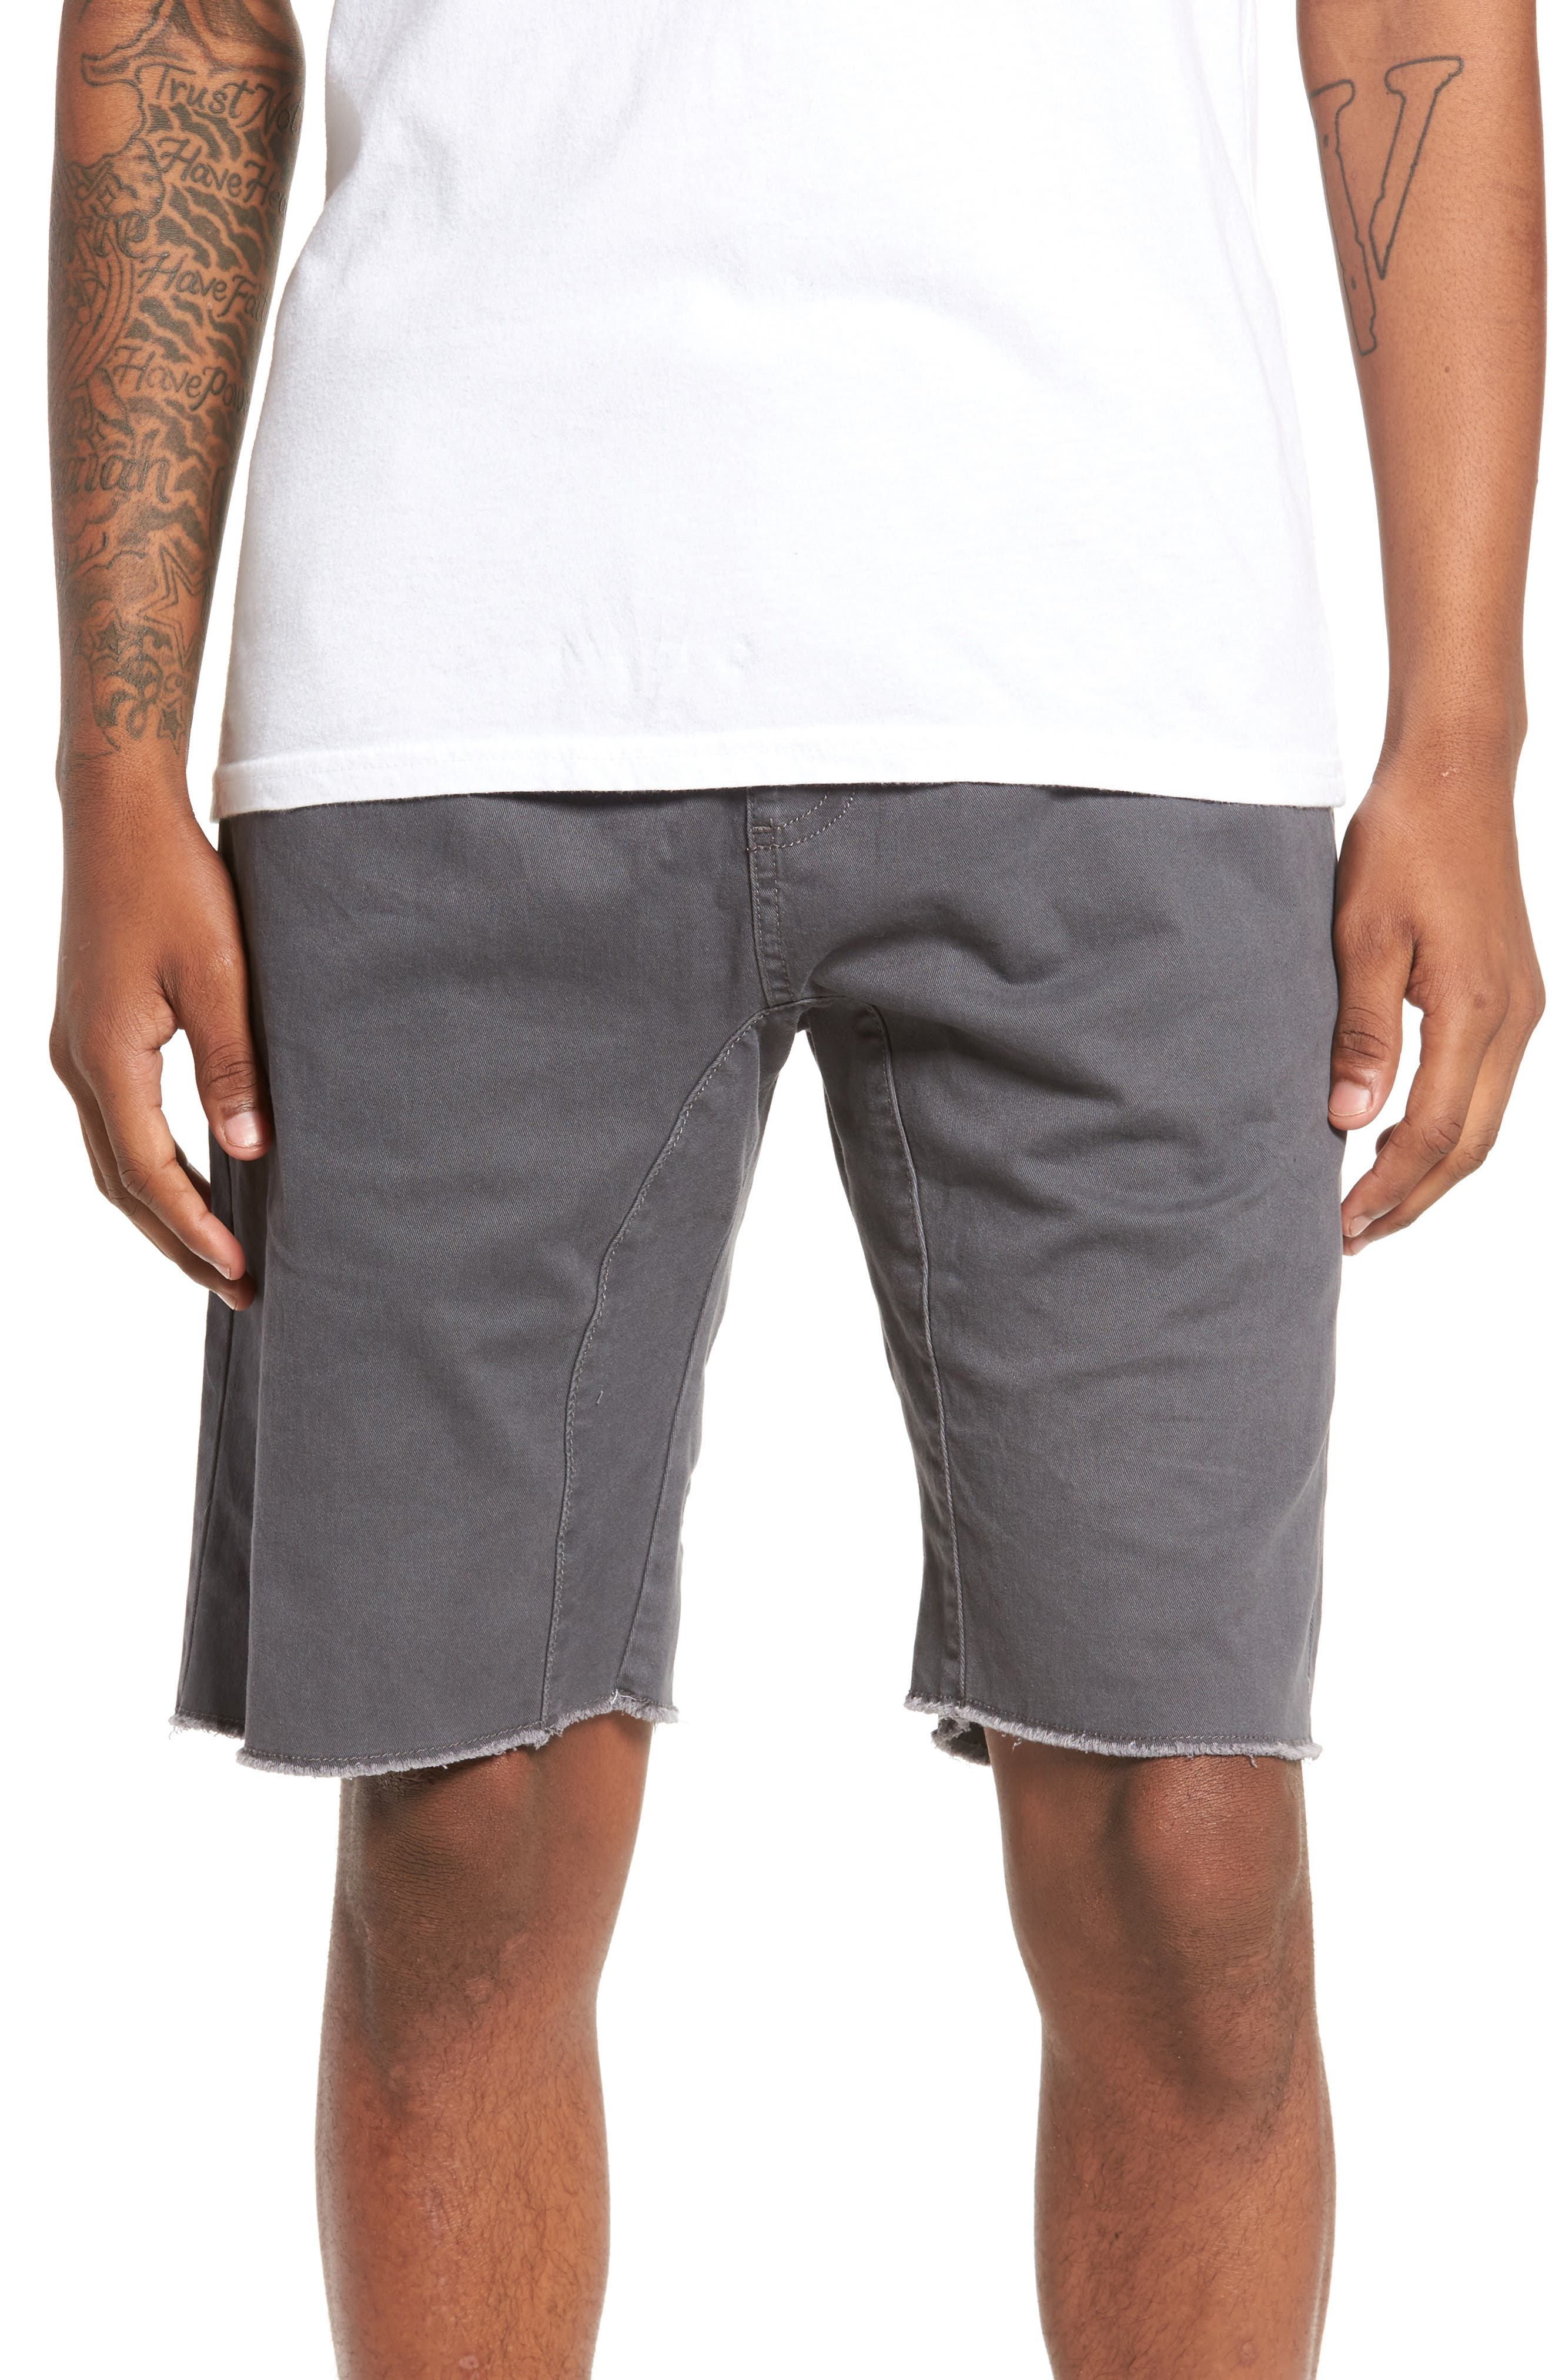 Jogger Shorts,                         Main,                         color, 022